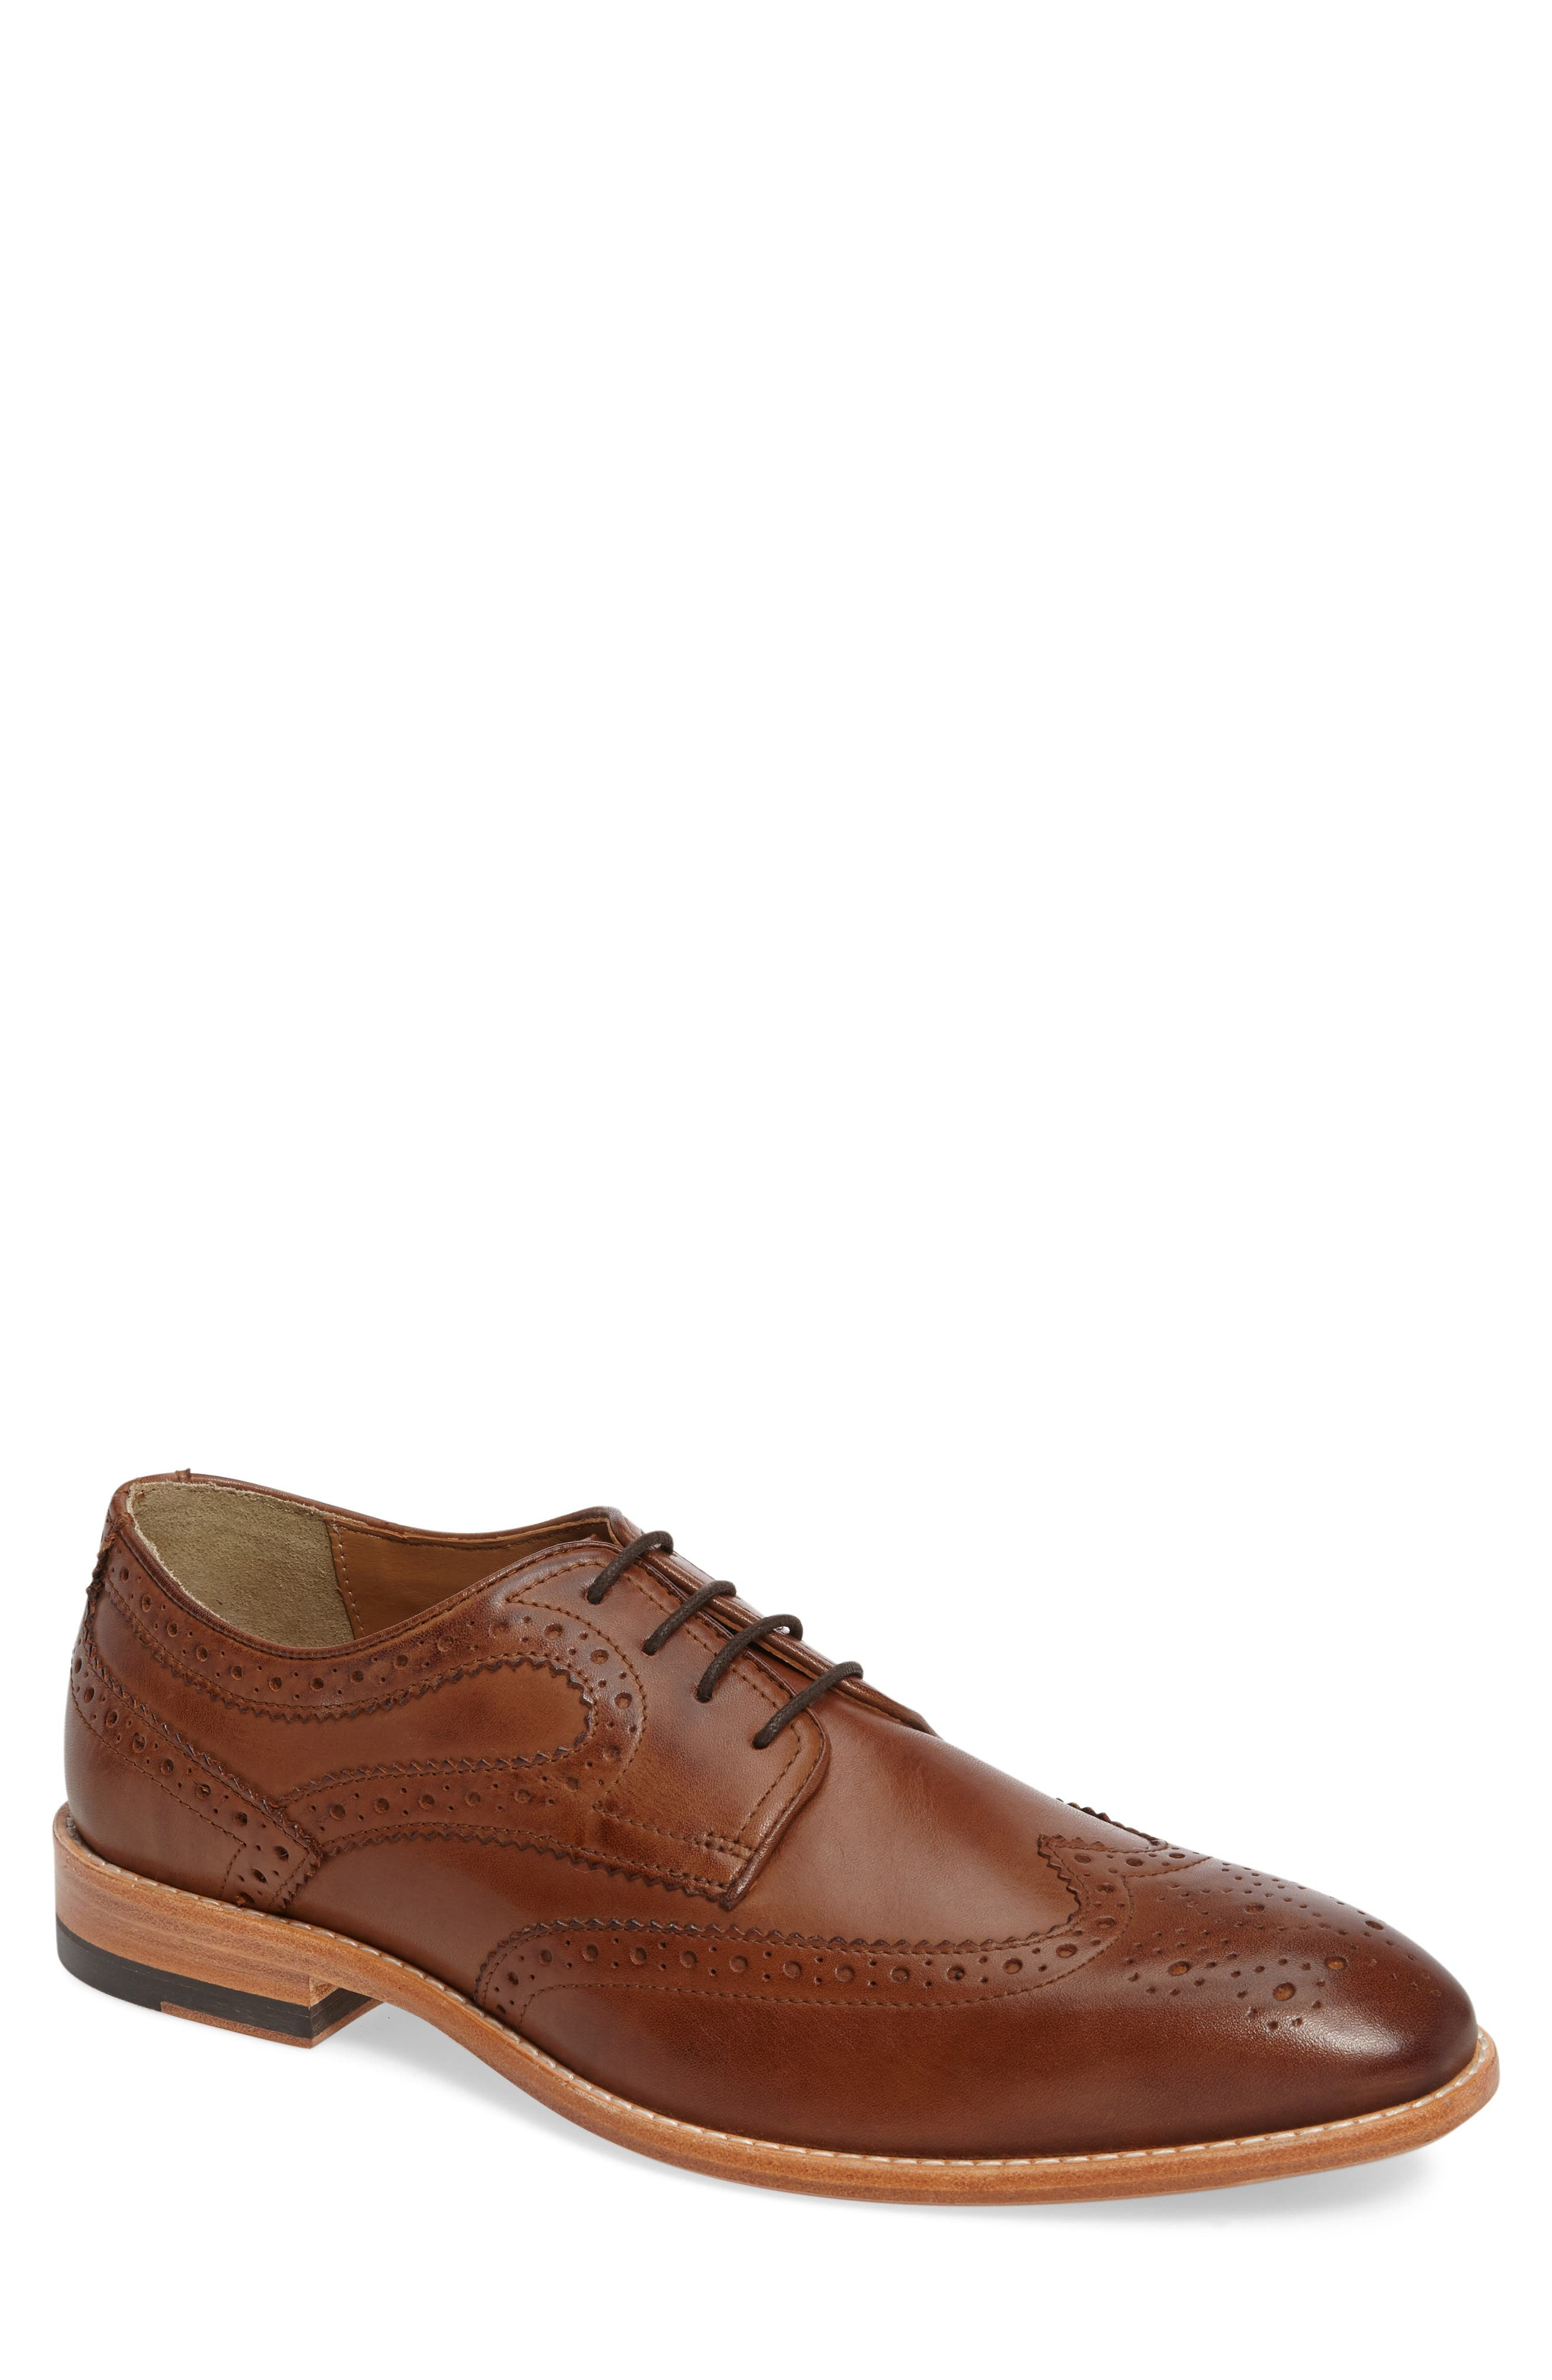 Vance Wingtip Oxford,                         Main,                         color, Tan Leather